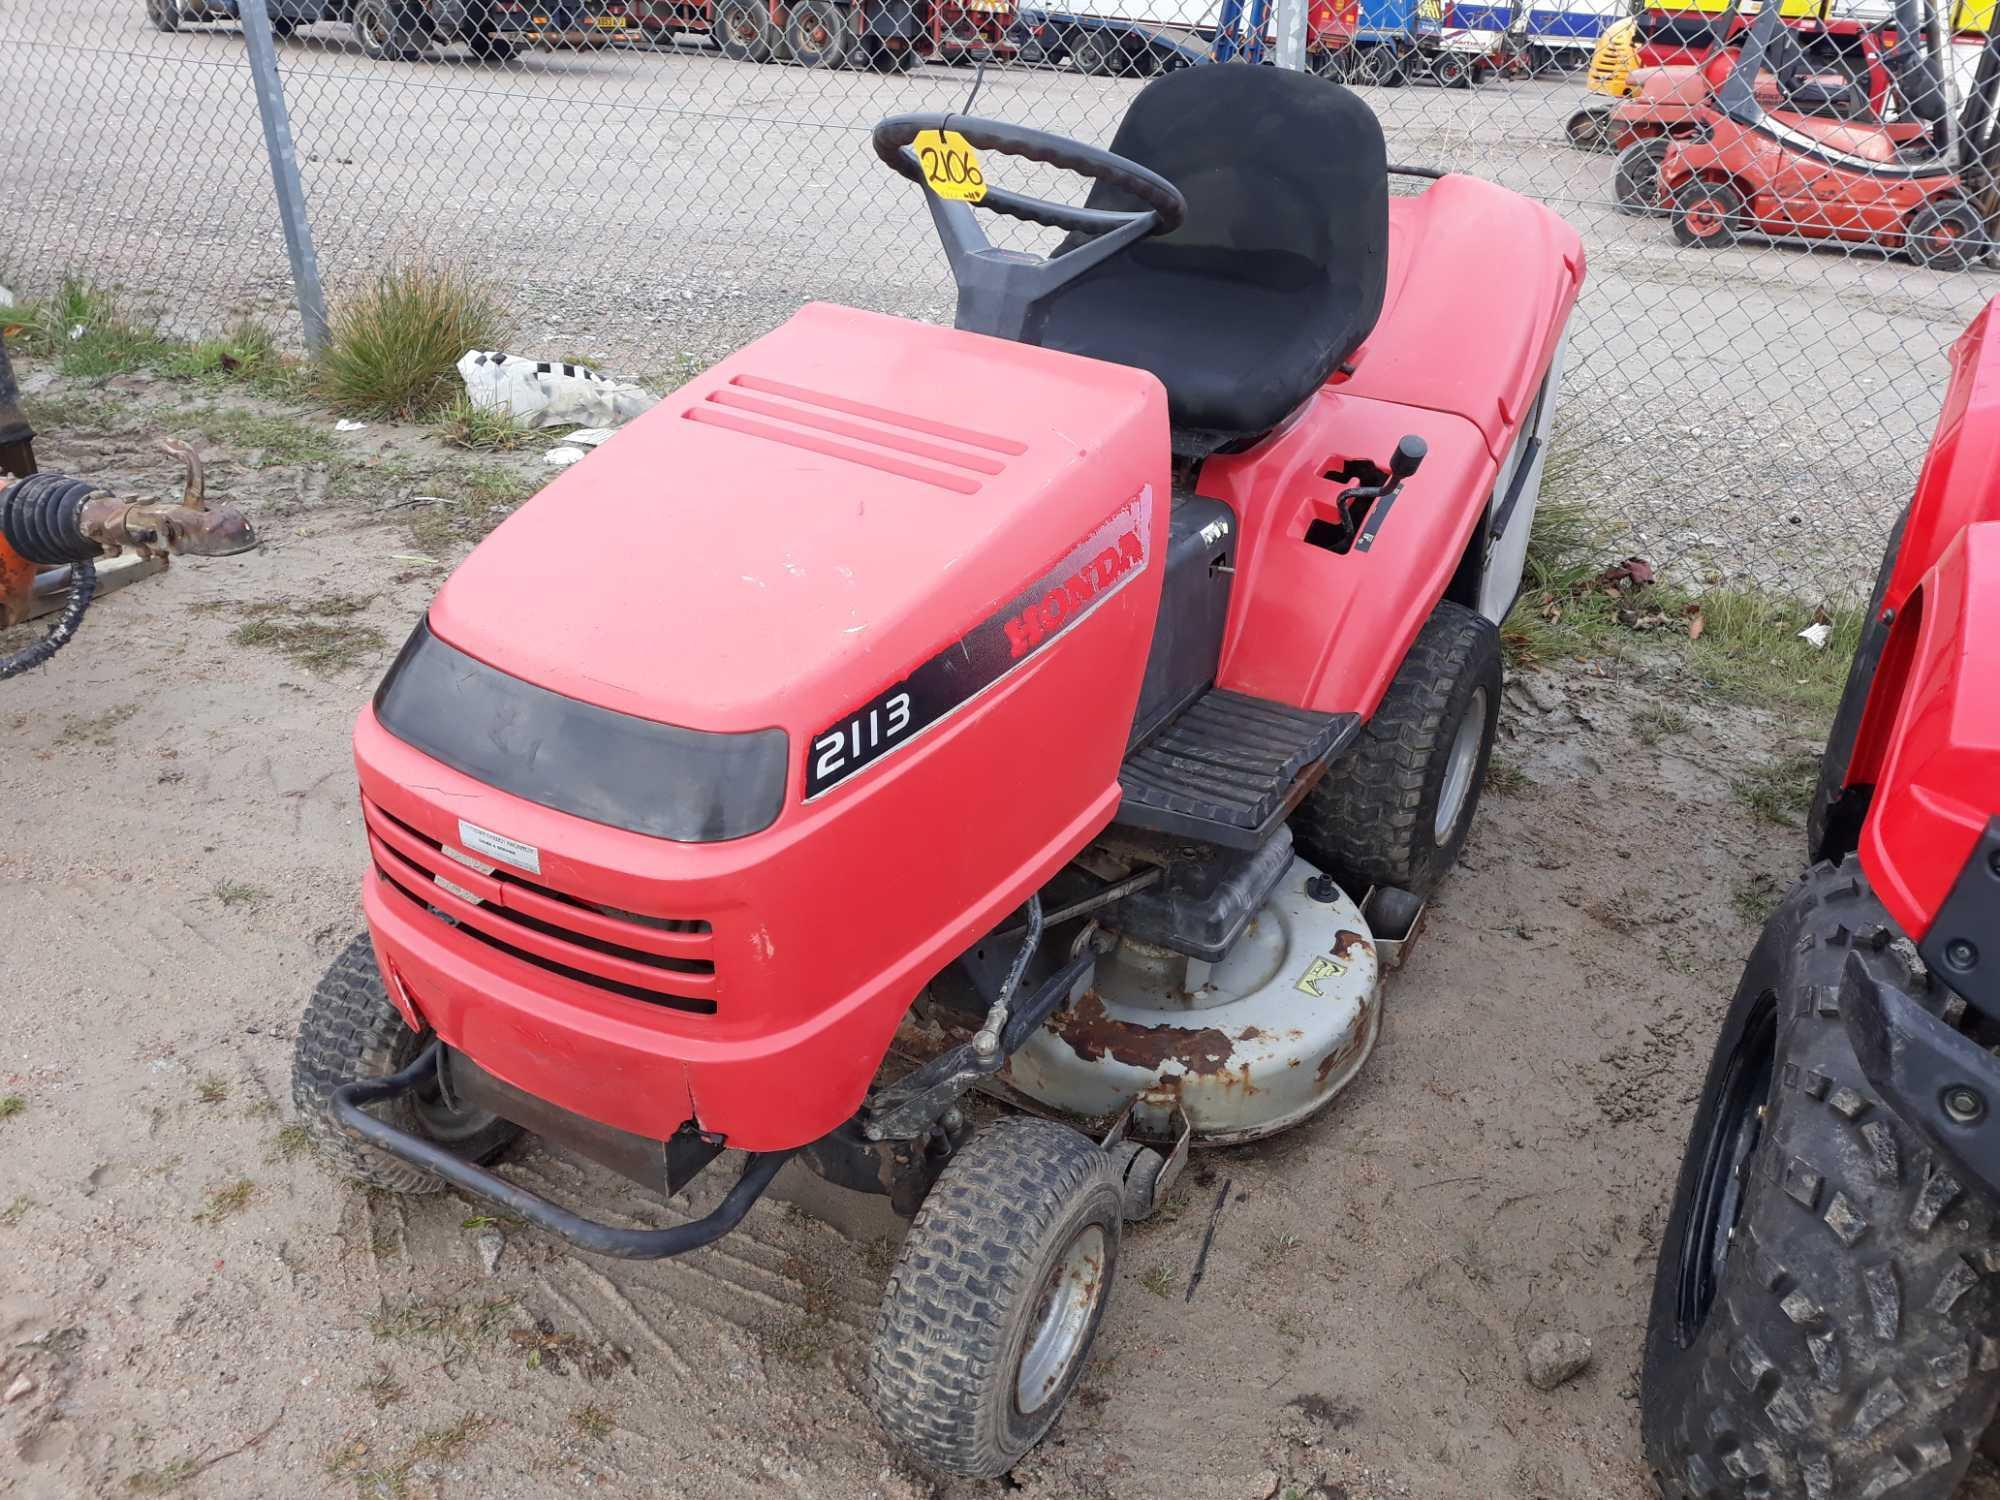 Lot 2106 - HONDA RIDE ON LAWNMOWER KEY IN PC